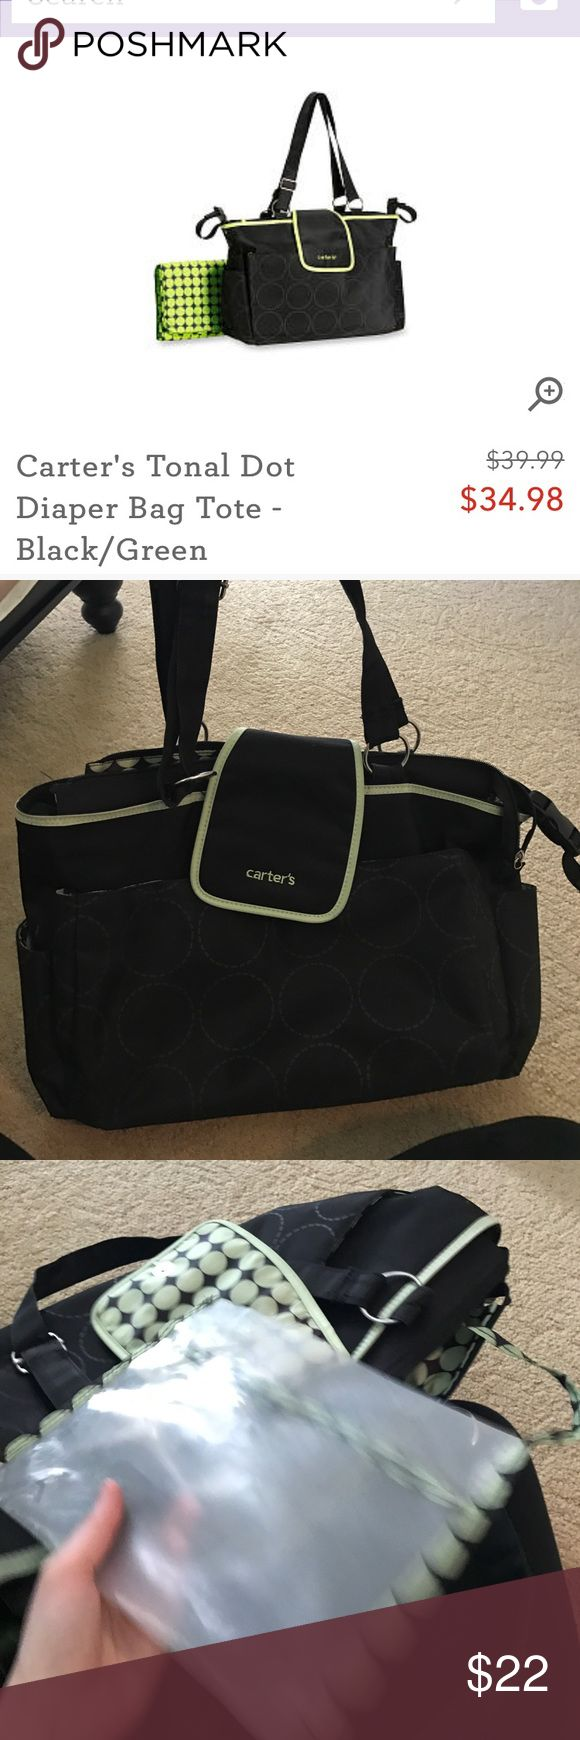 Carters diaper bag Black and green Carters diaper bag, still for sale at toys r us!  Missing the changing pad, but otherwise minimal use.  Definitely big enough for 1 kid- my two are so close together I found I needed something larger for 2 sets of diapers, clothes, toys, etc Carter's Accessories Bags